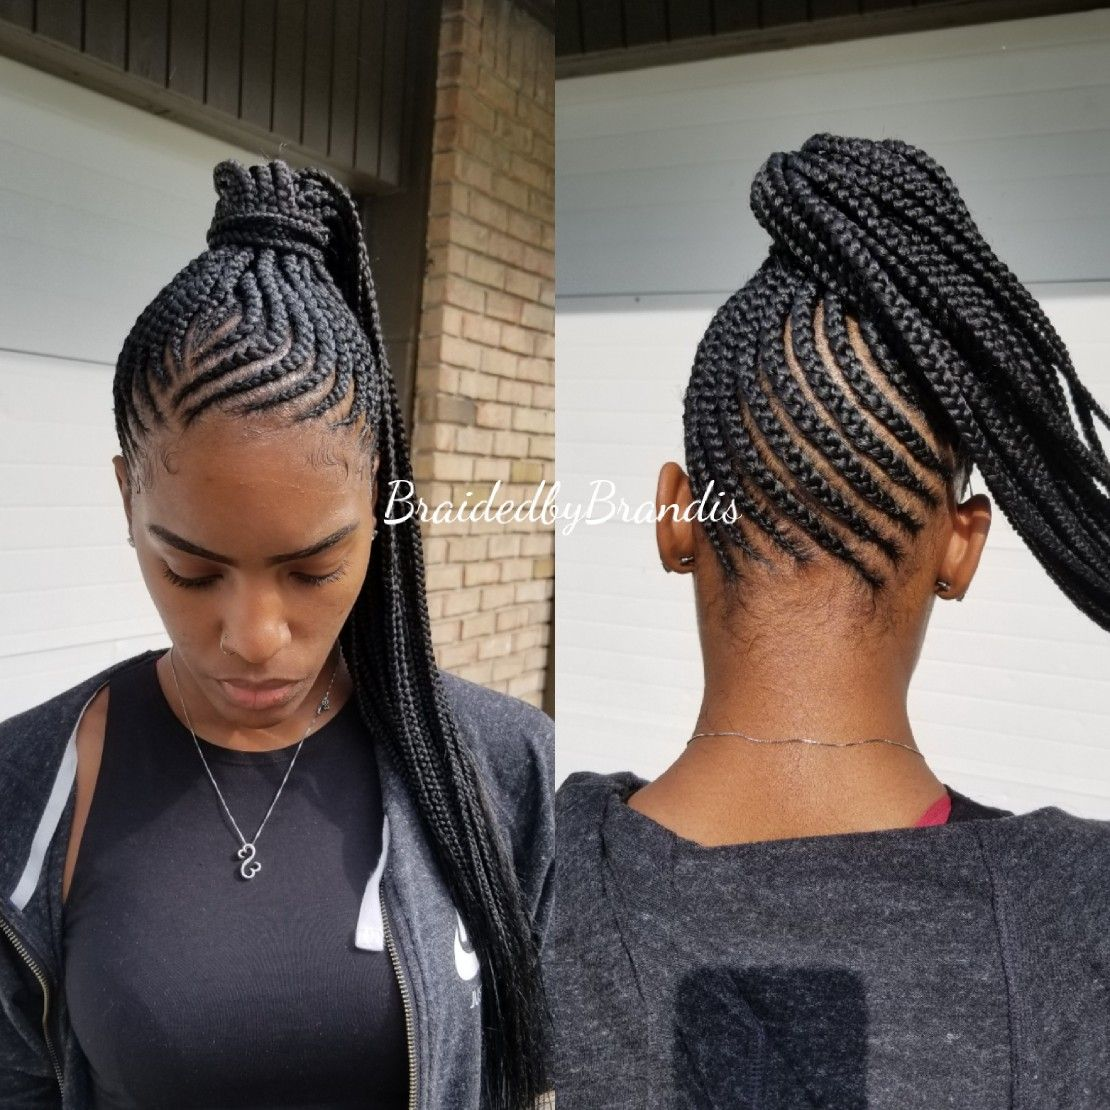 Small Feed In Ponytail Feed In Ponytail Small Feed In Braids Feed In Braids Ponytail